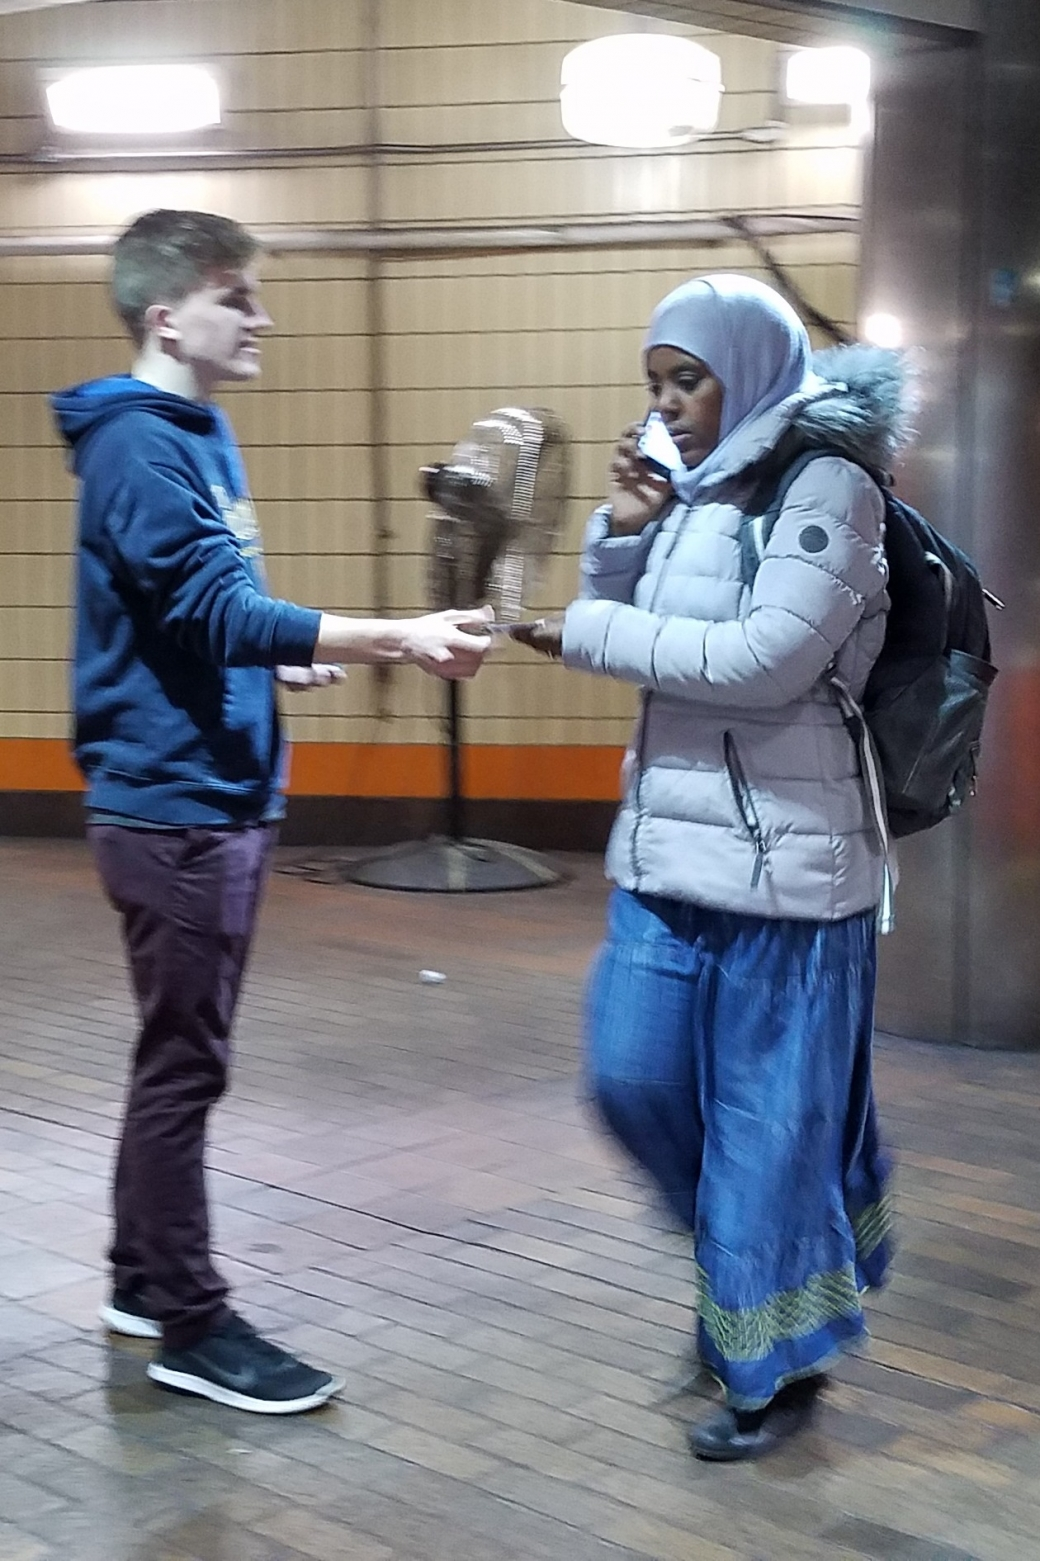 Muslim women often take gospel literature from us. Here a Muslim woman takes a tract from Ryan. Sadly, whenever a Muslim woman is with a man, she almost never accepts anything from us. How sad that these women are so intimidated to show their interest when with their husbands or boyfriends.